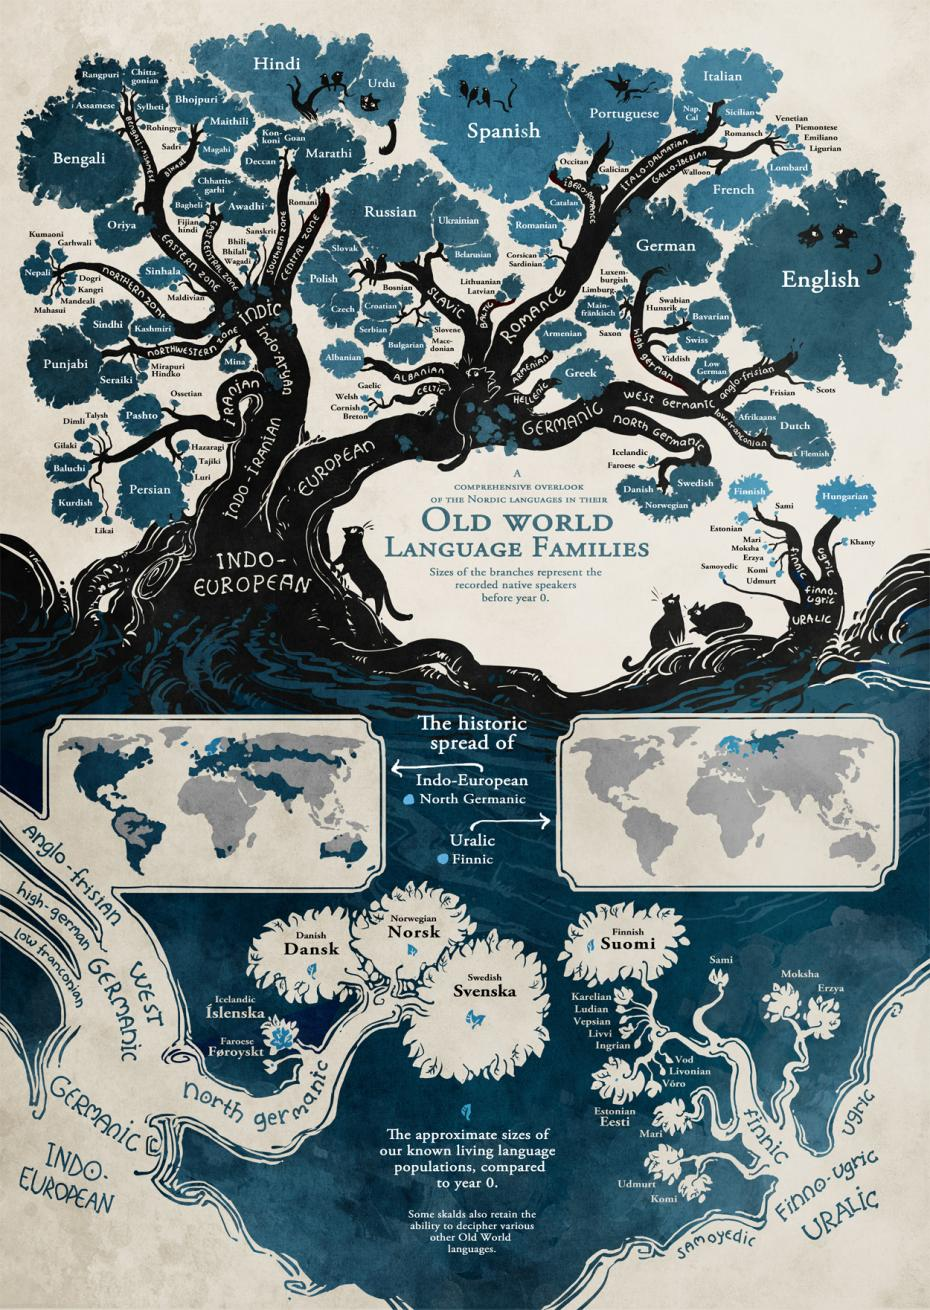 illustrated-linguistic-tree-languages-minna-sundberg-high-res